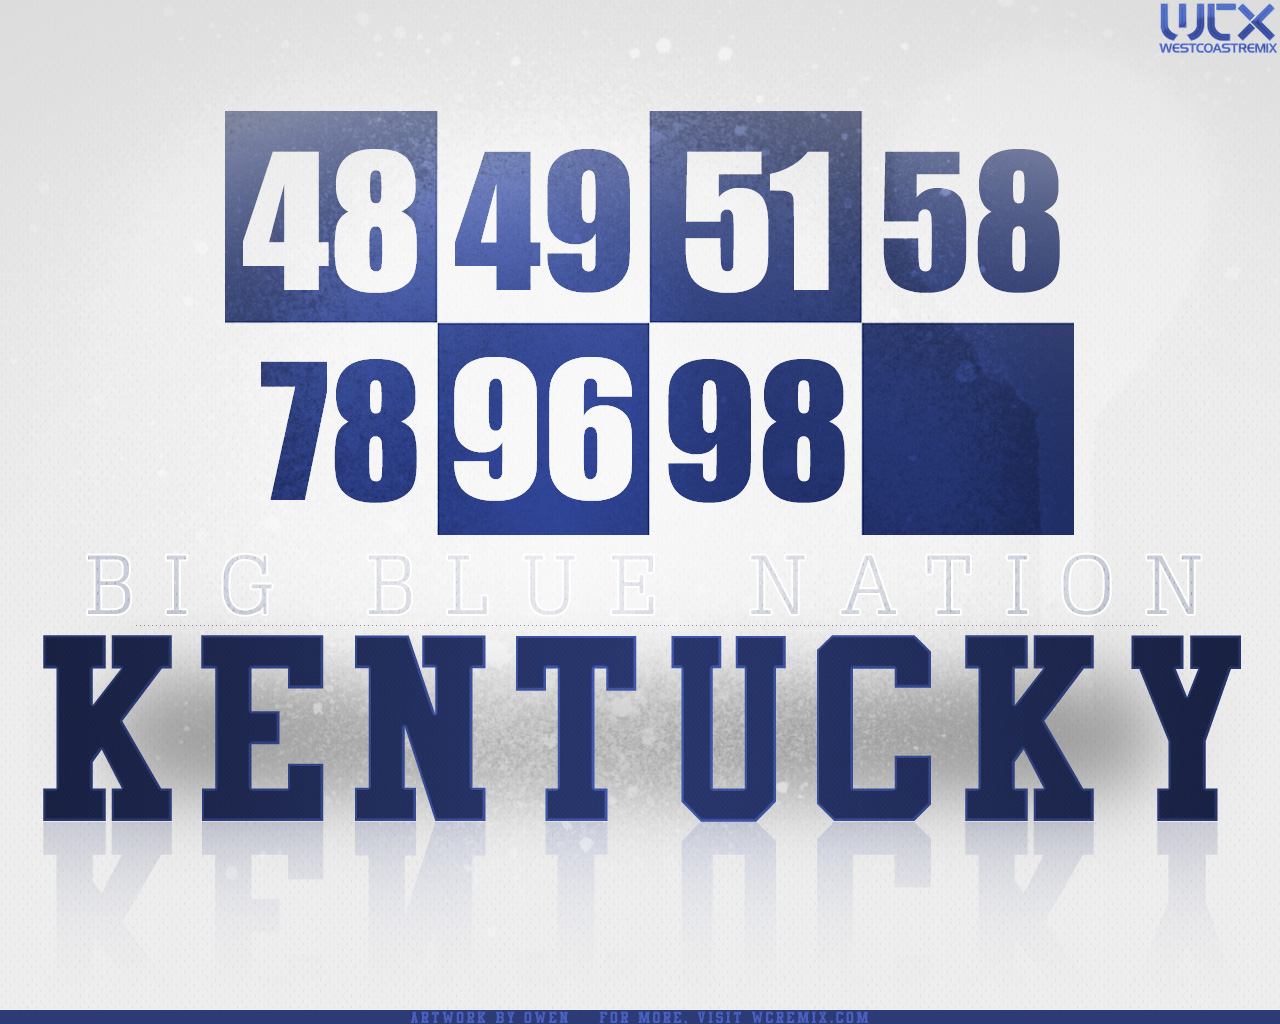 Kentucky Basketball Images We Ll Leave You In Blue Dust Hd: UK Basketball Wallpaper Free